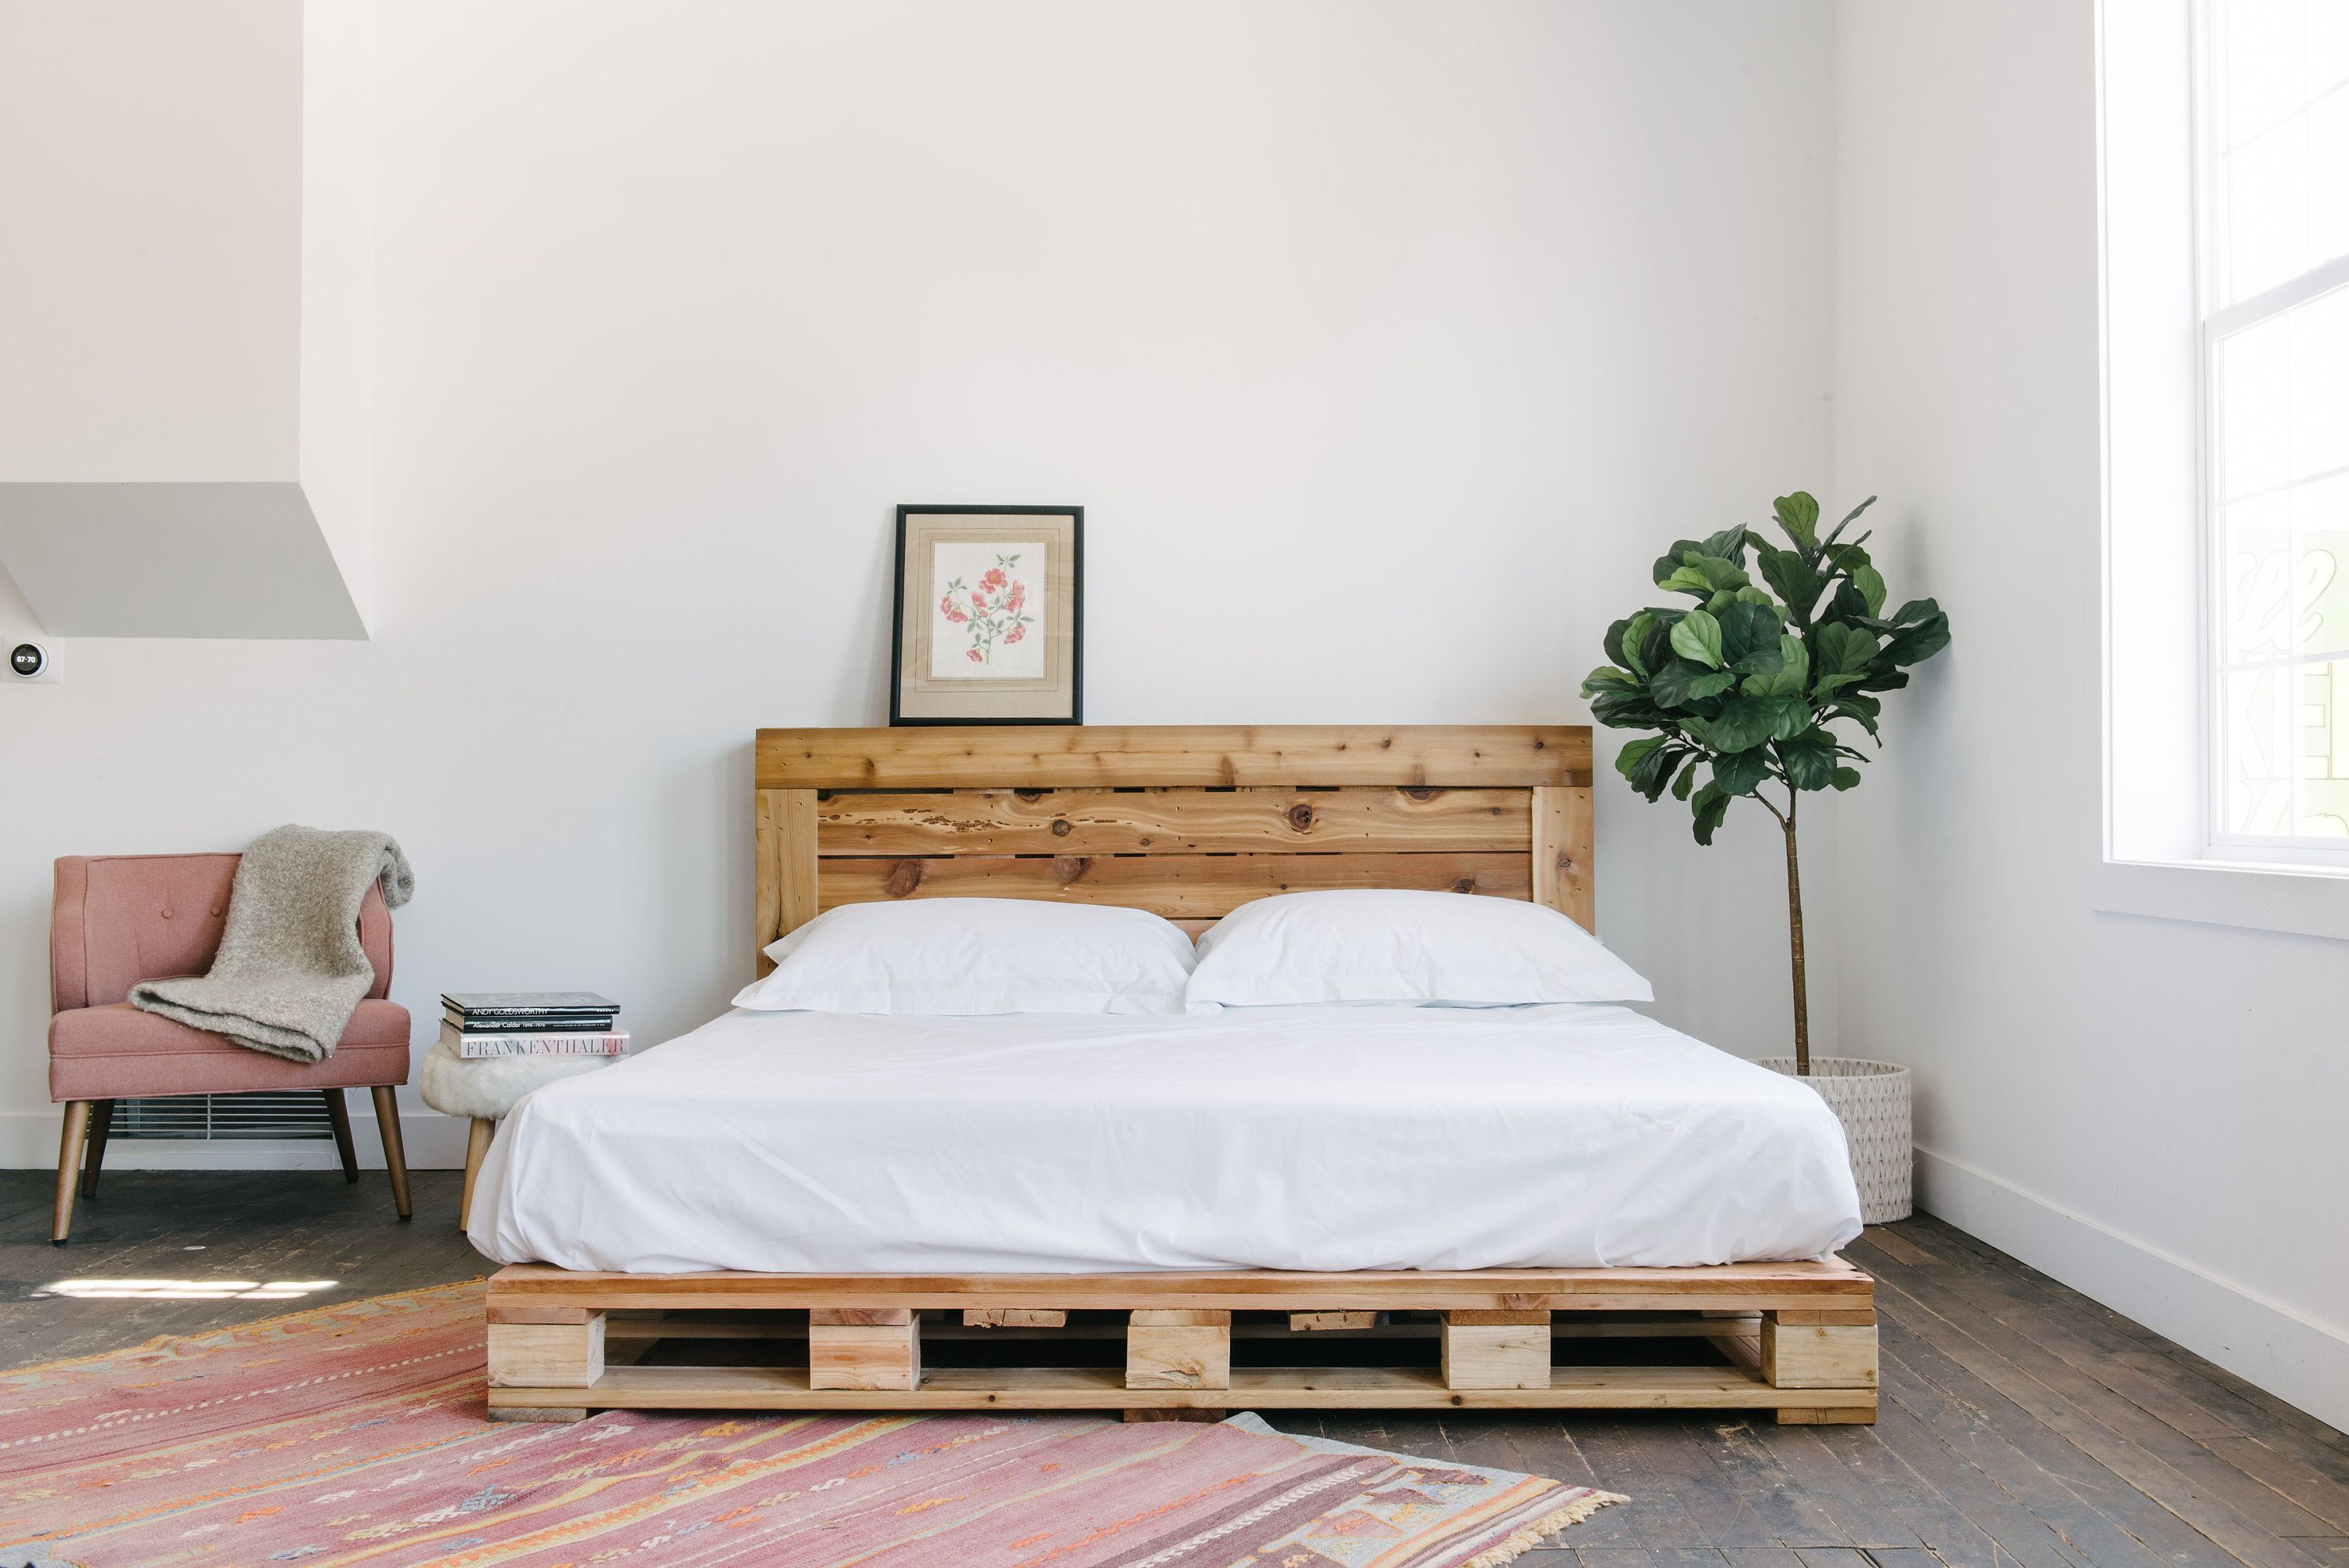 Pallet Bed The King Size Includes Headboard and Platform